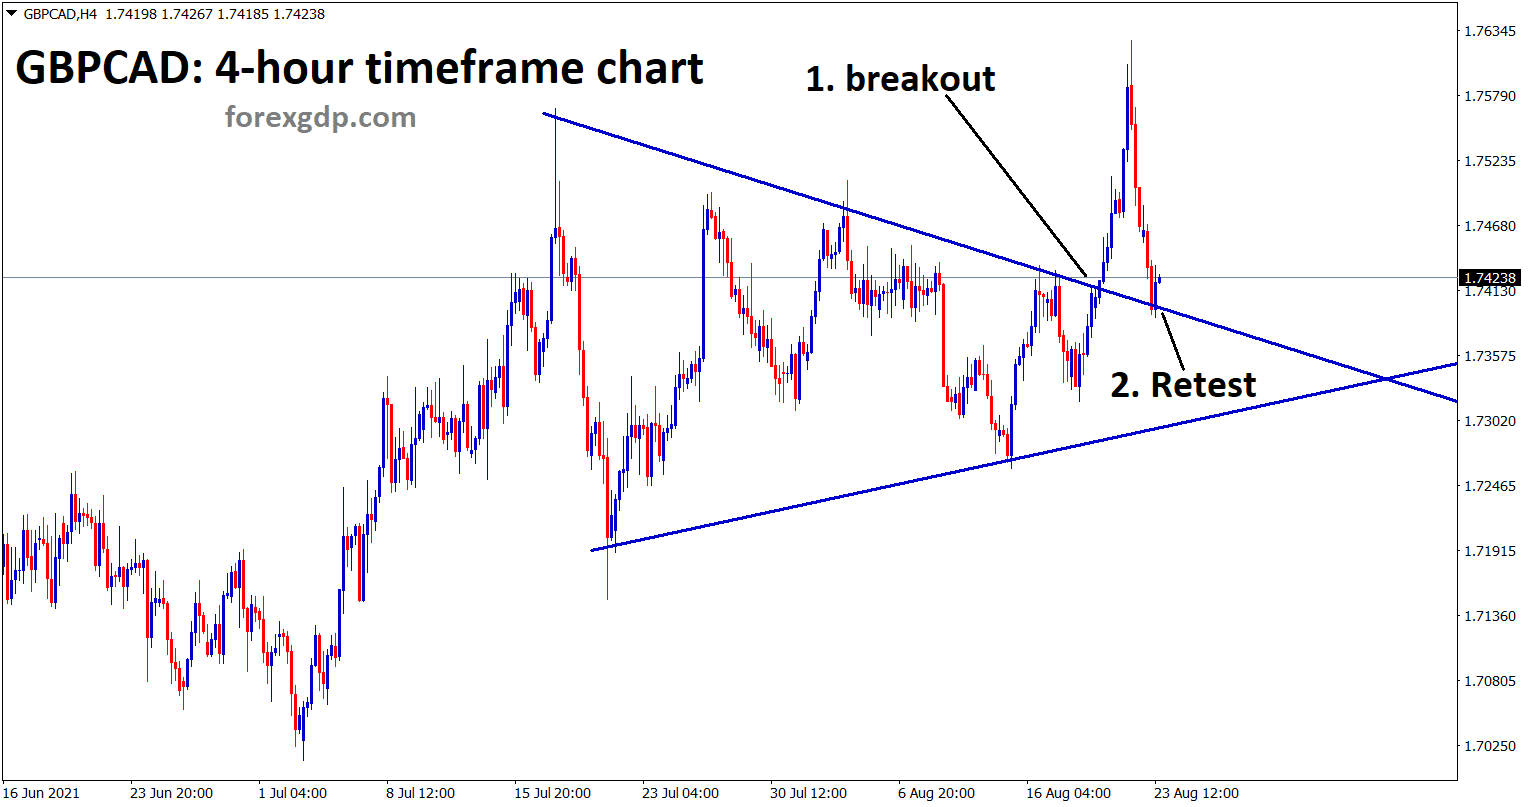 GBPCAD hits the retest area of the symmetrical Triangle pattern